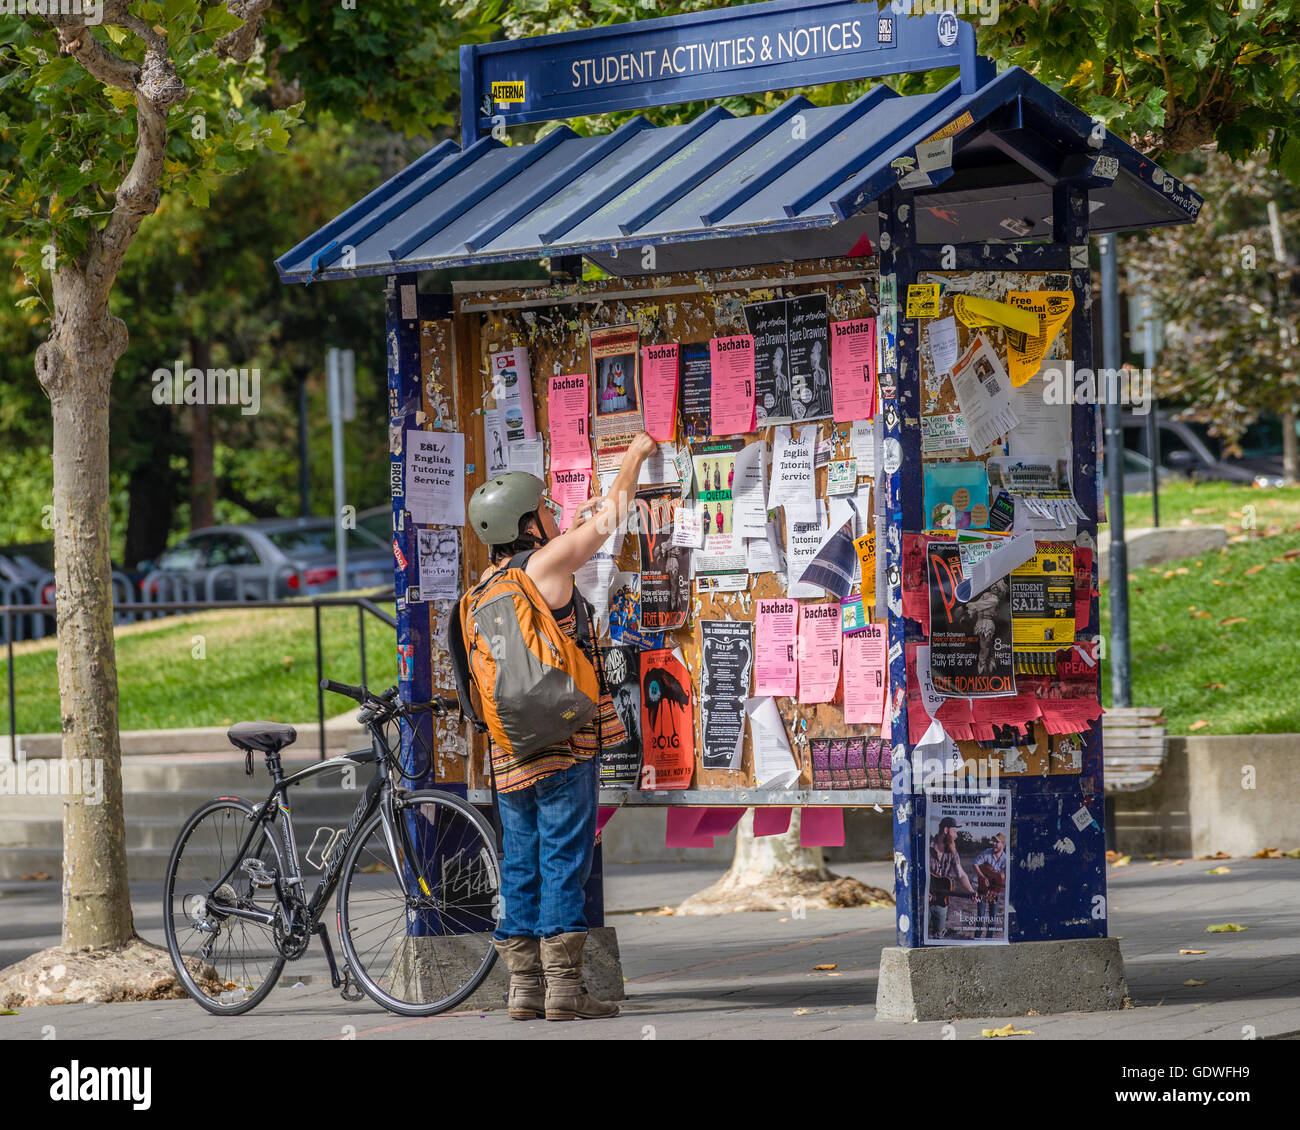 Woman on bicycle posting a flyer on a bulletin board kiosk on the University of California at Berkeley college campus - Stock Image